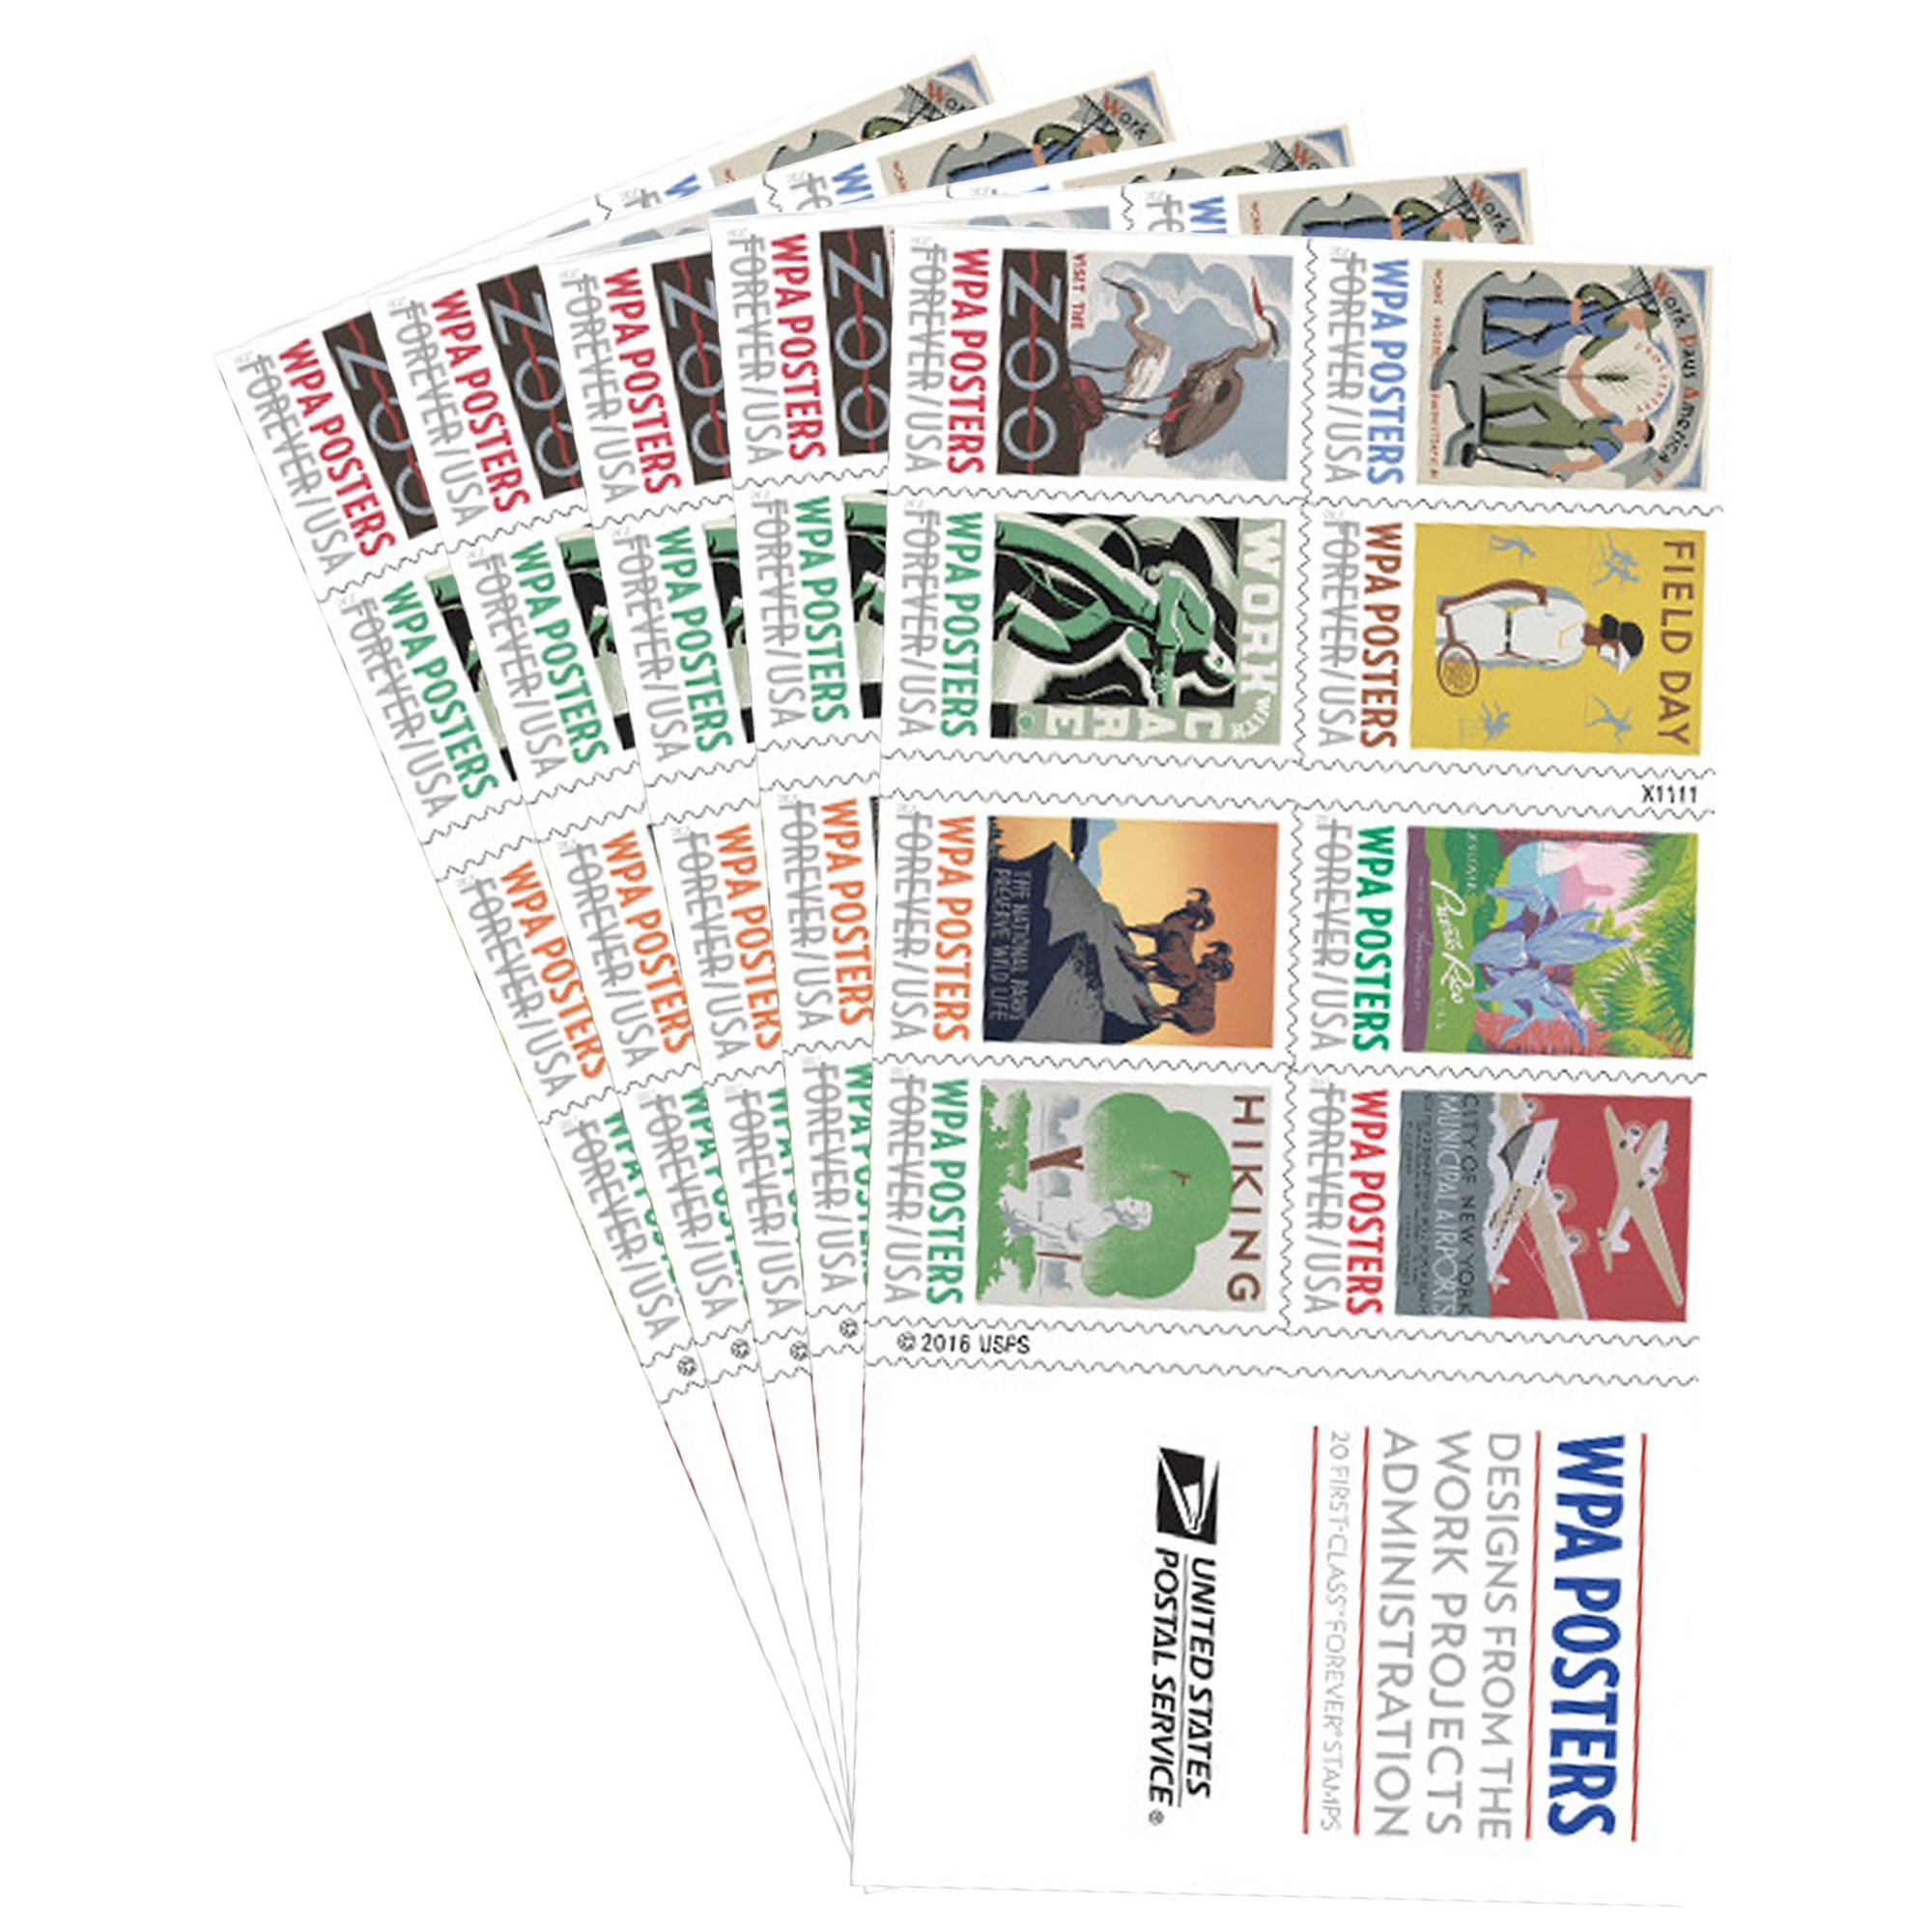 WPA Posters book of 20 Forever USPS Postage Stamp Work Projects Administration (5 books of 20 stamps)